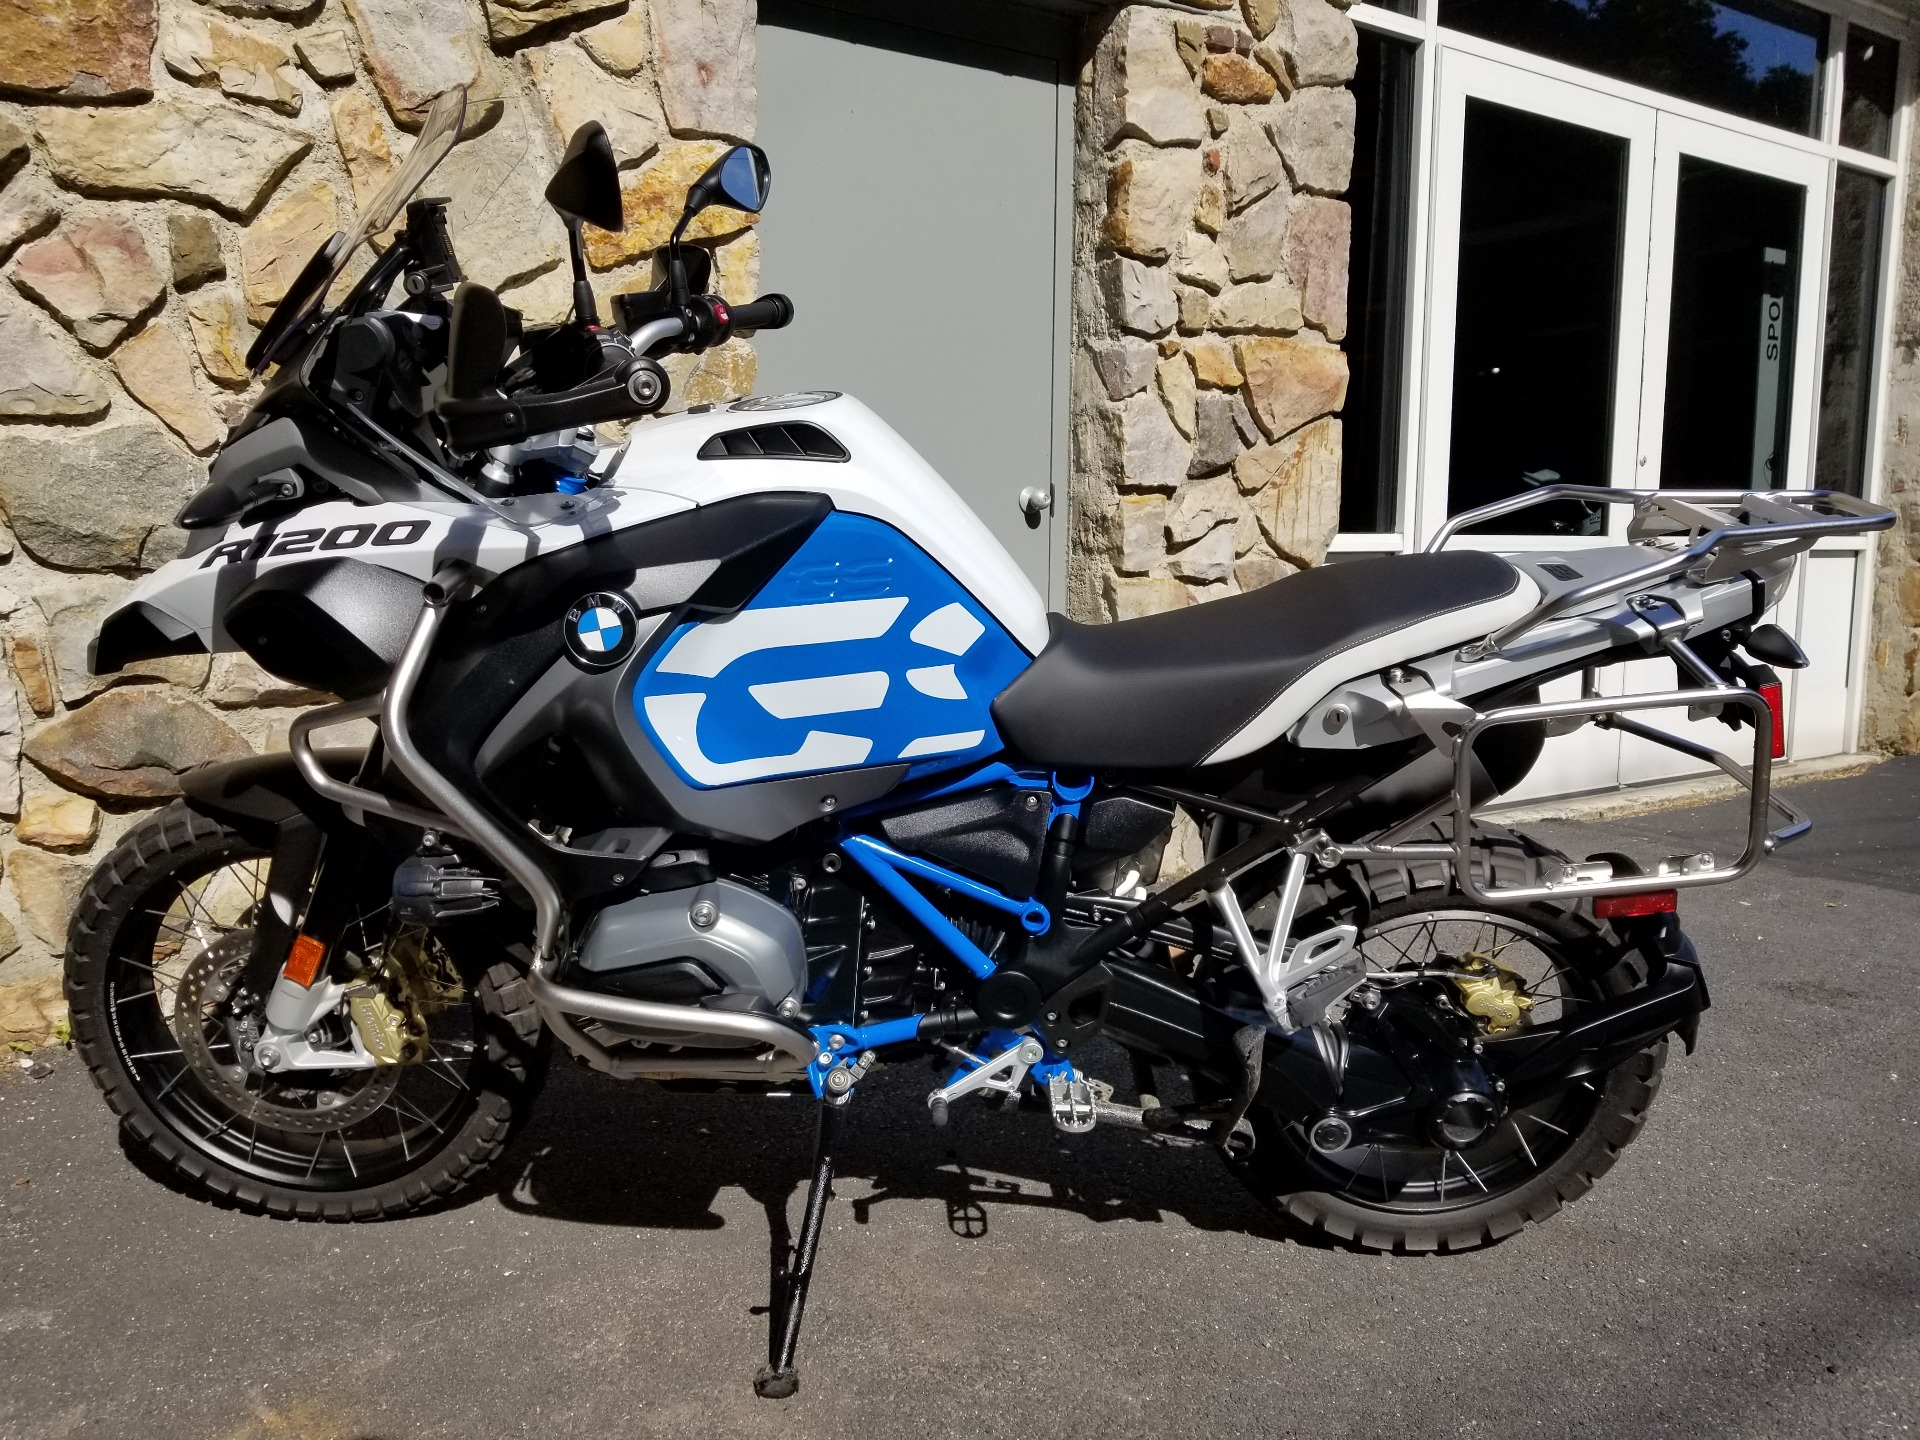 2018 BMW R 1200 GS Adventure in Port Clinton, Pennsylvania - Photo 2